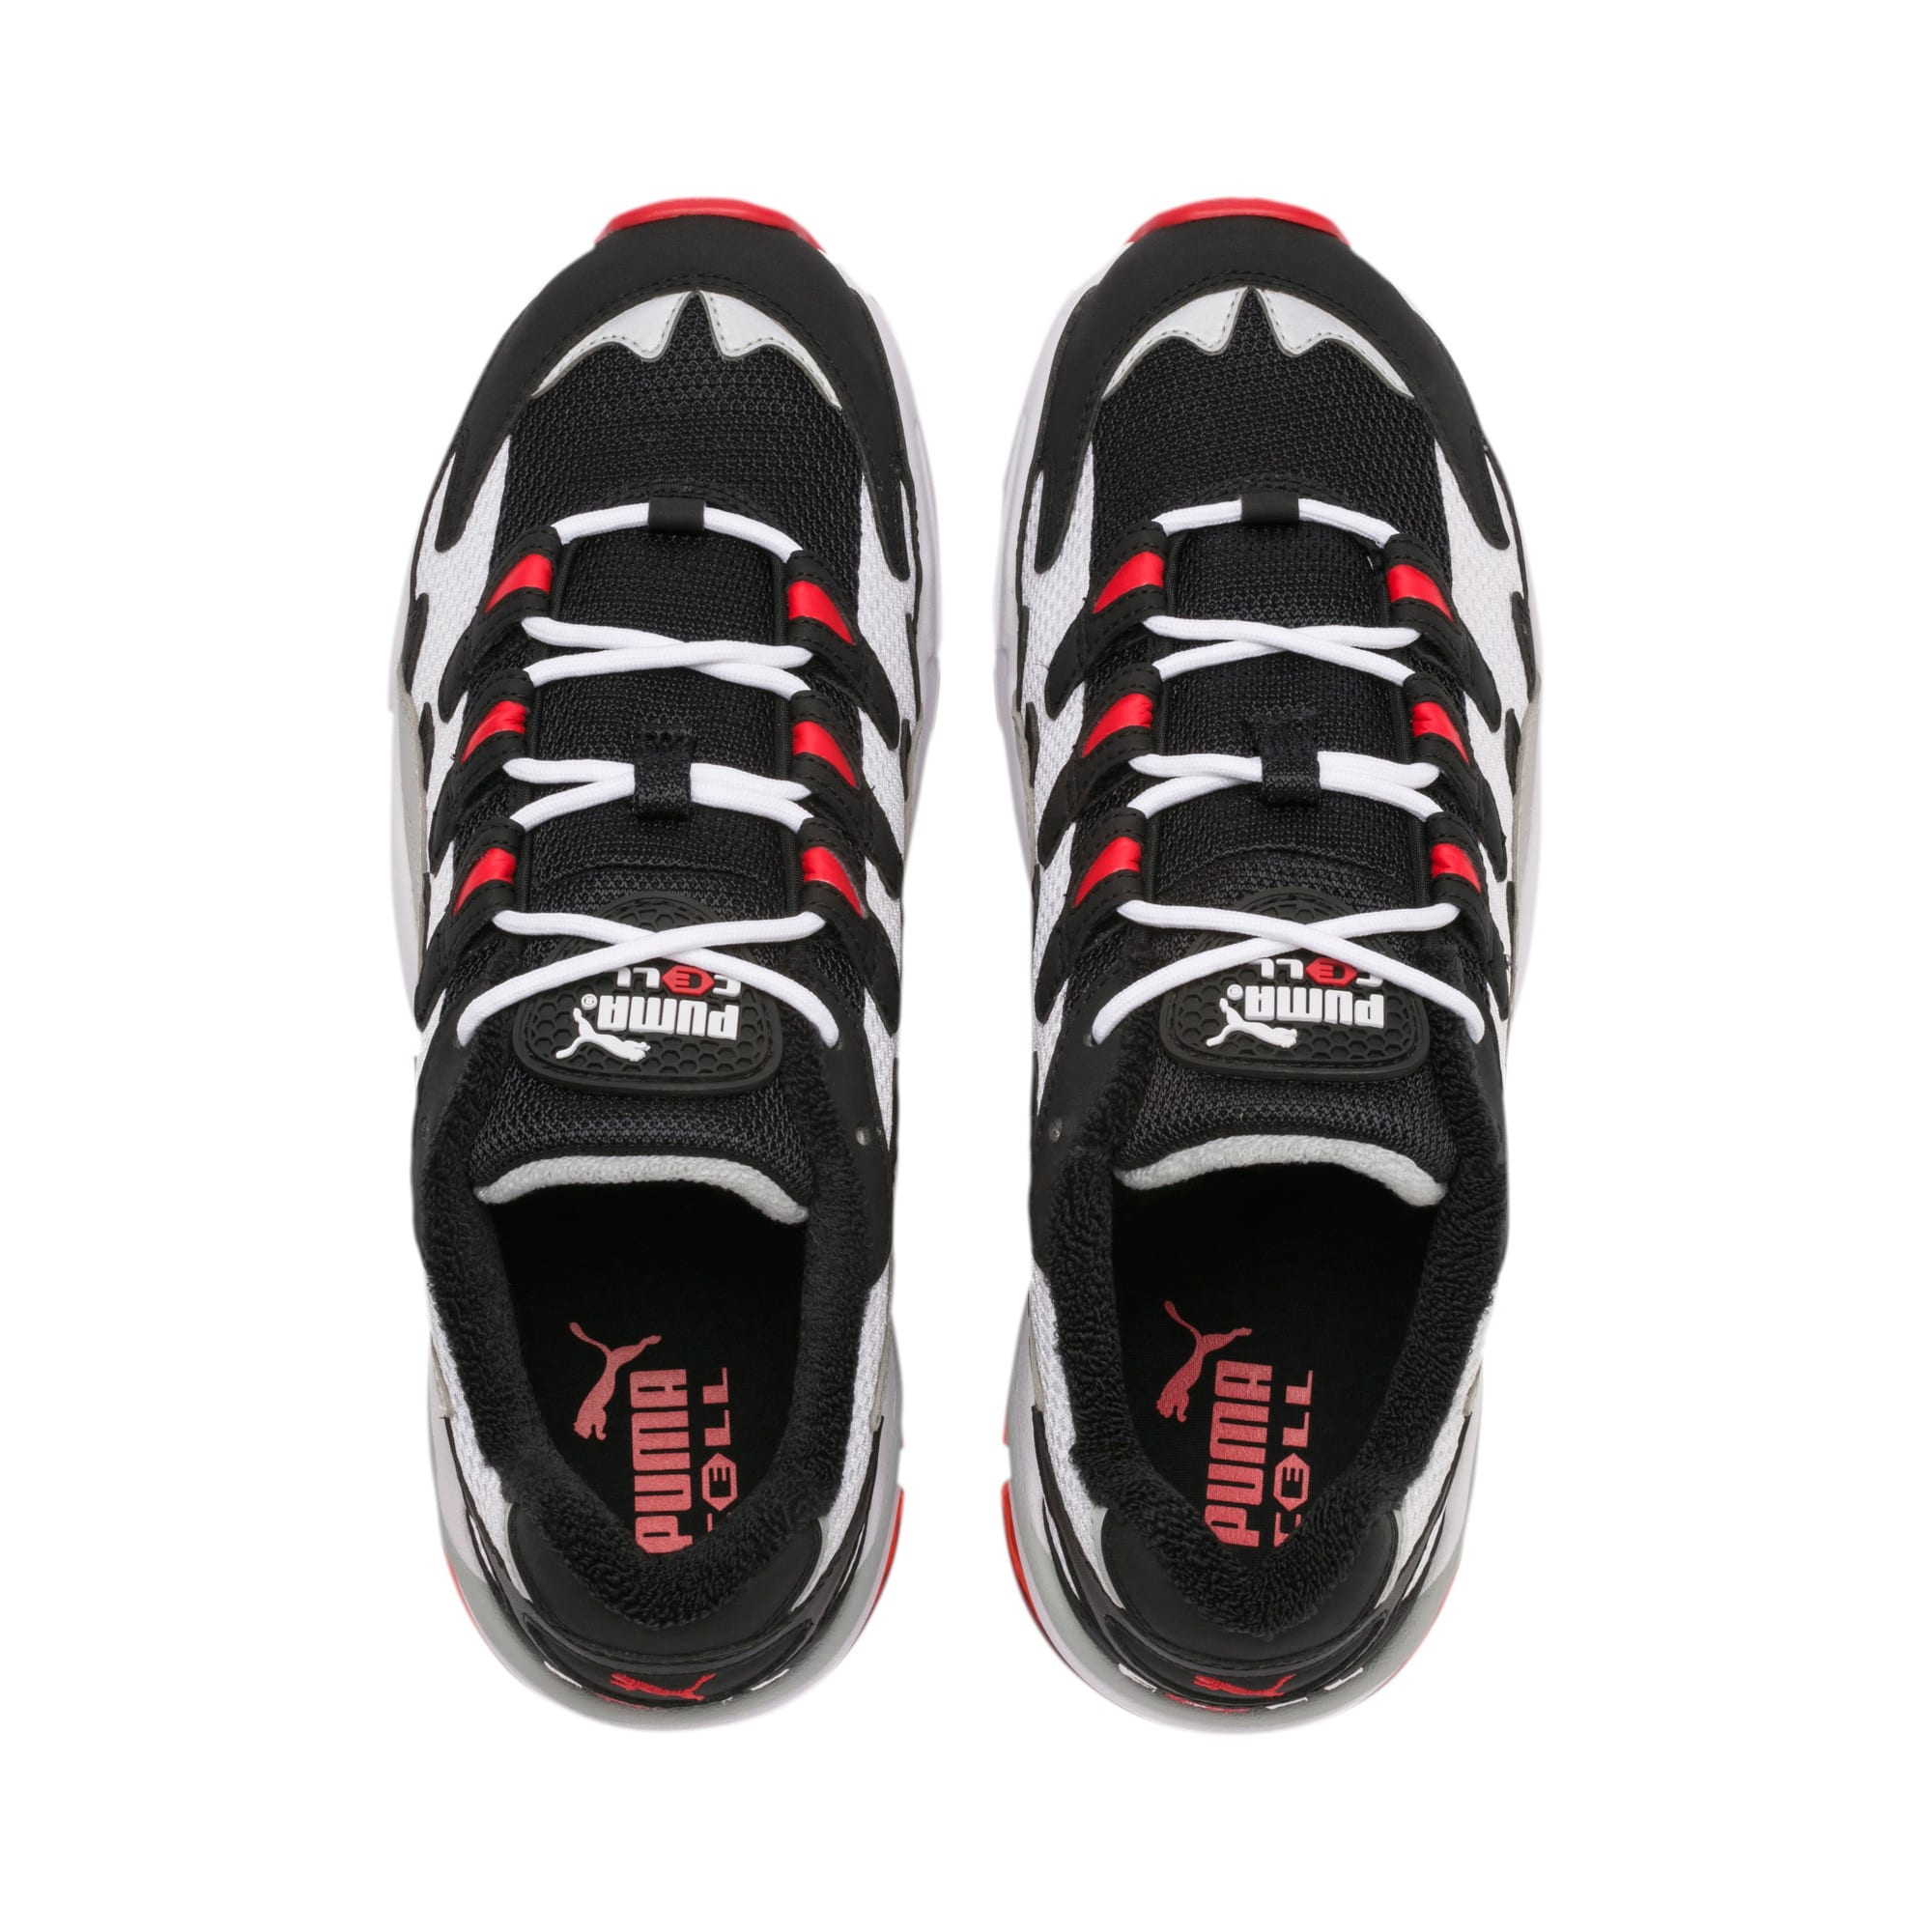 Thumbnail 7 of CELL Alien OG Sneakers, Puma Black-High Risk Red, medium